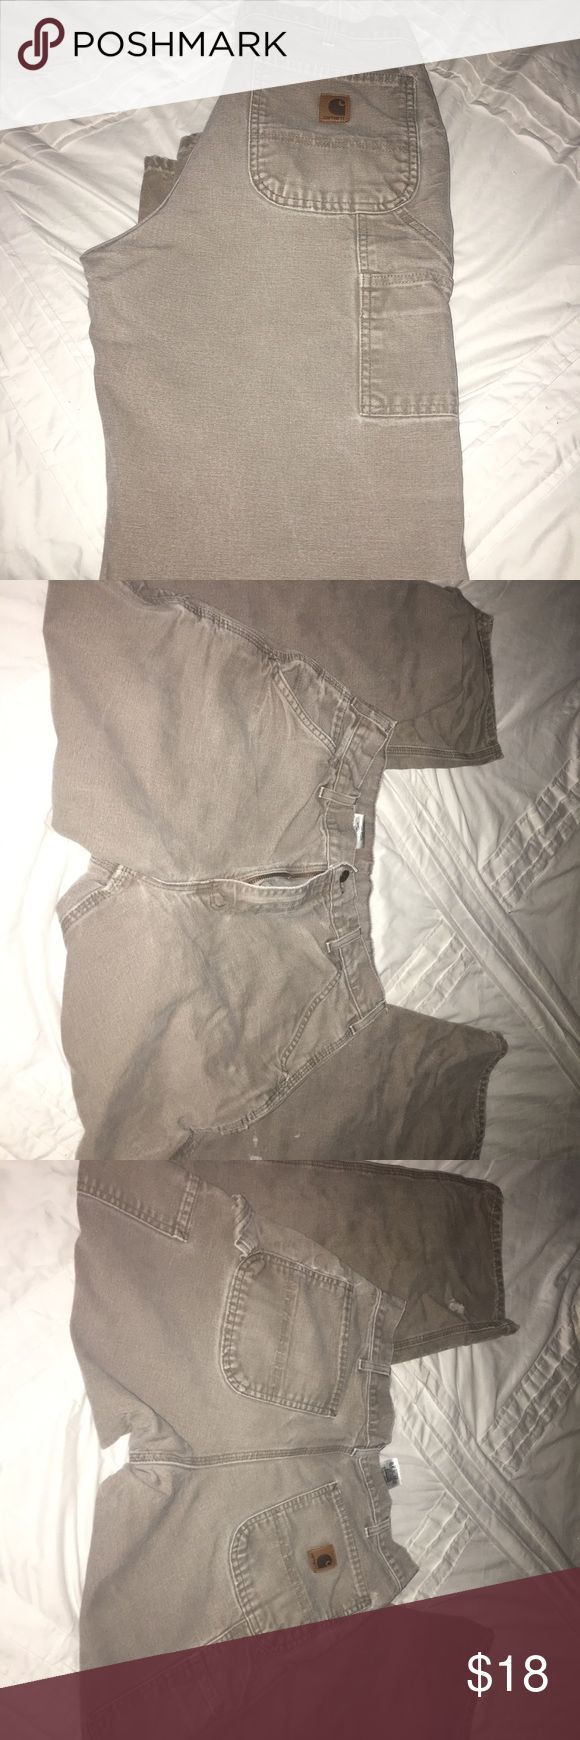 Men's Carhartt Pants Men's Carhartt Pants. Size 33/32. Brown in color. Used condition but still have lots of life left. They have a few small holes I have pictured. Carhartt Pants Cargo